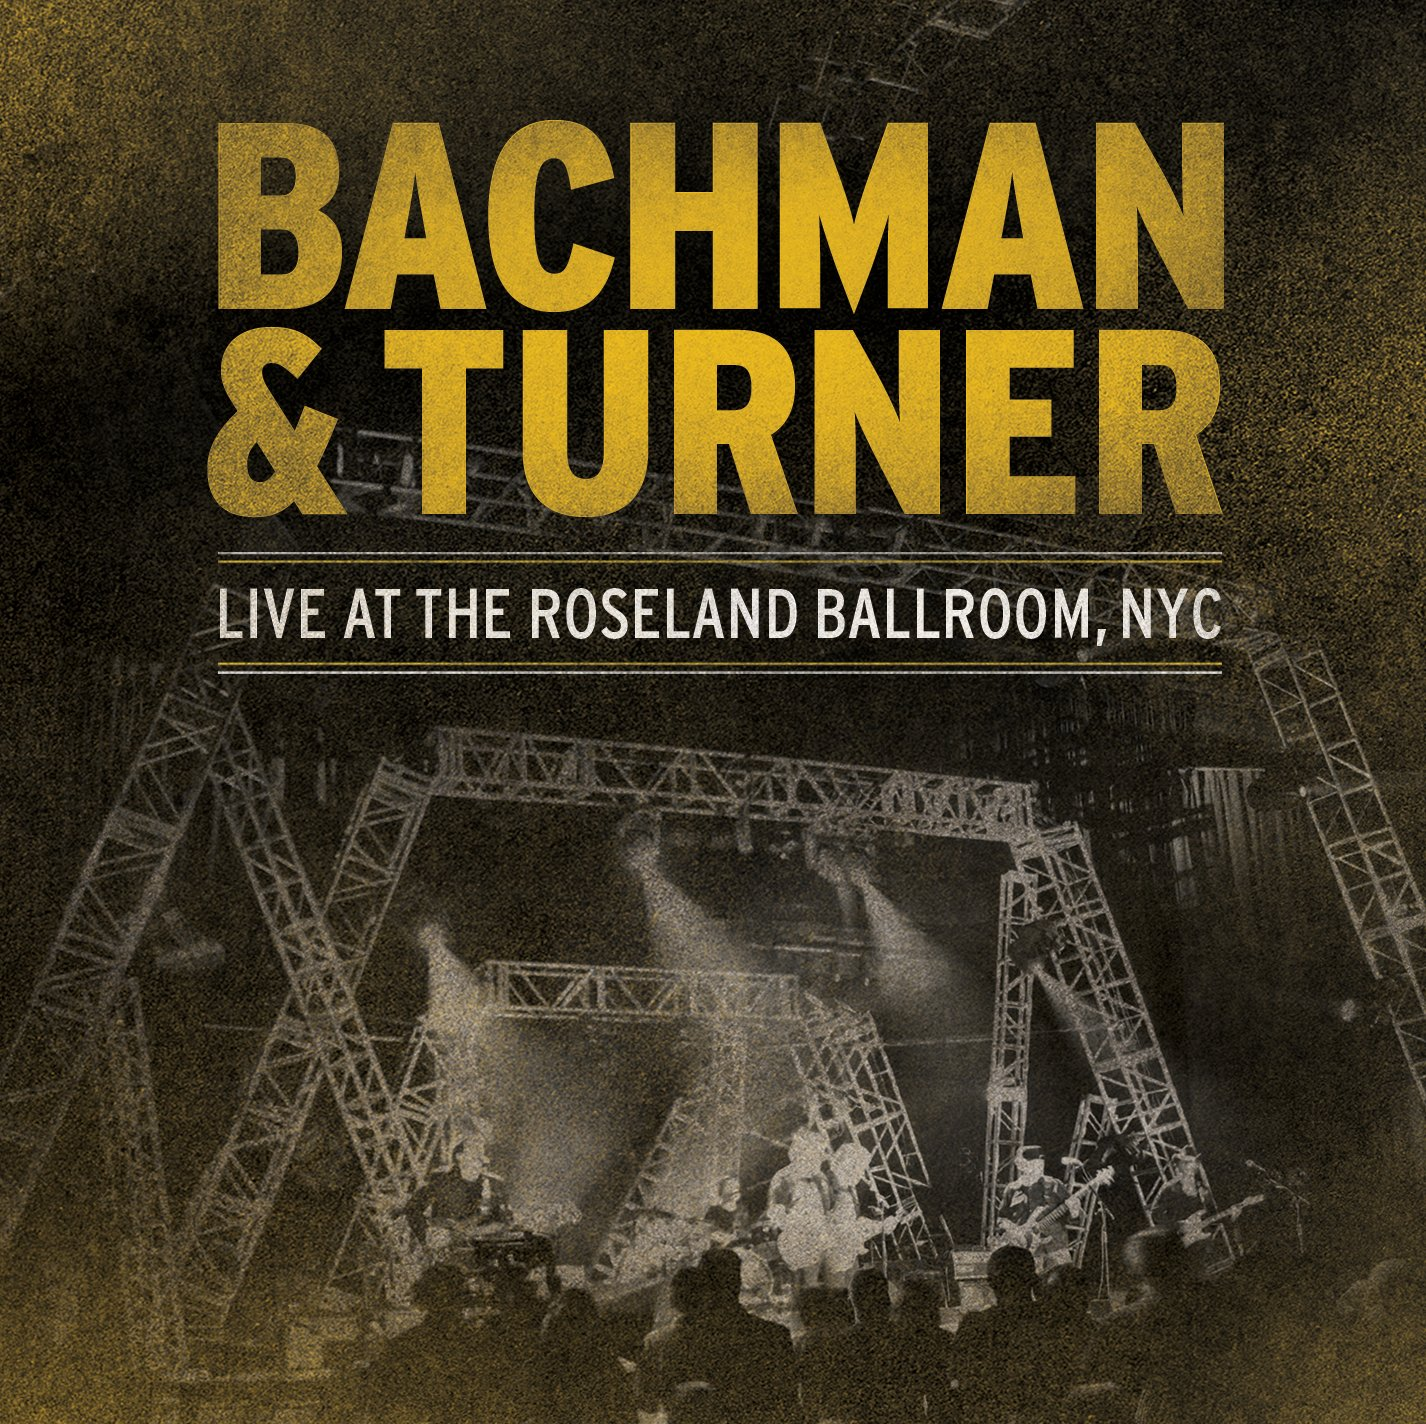 Vinilo : Bachman & Turner - Live At The Roseland Ballroom Nyc (2PC)